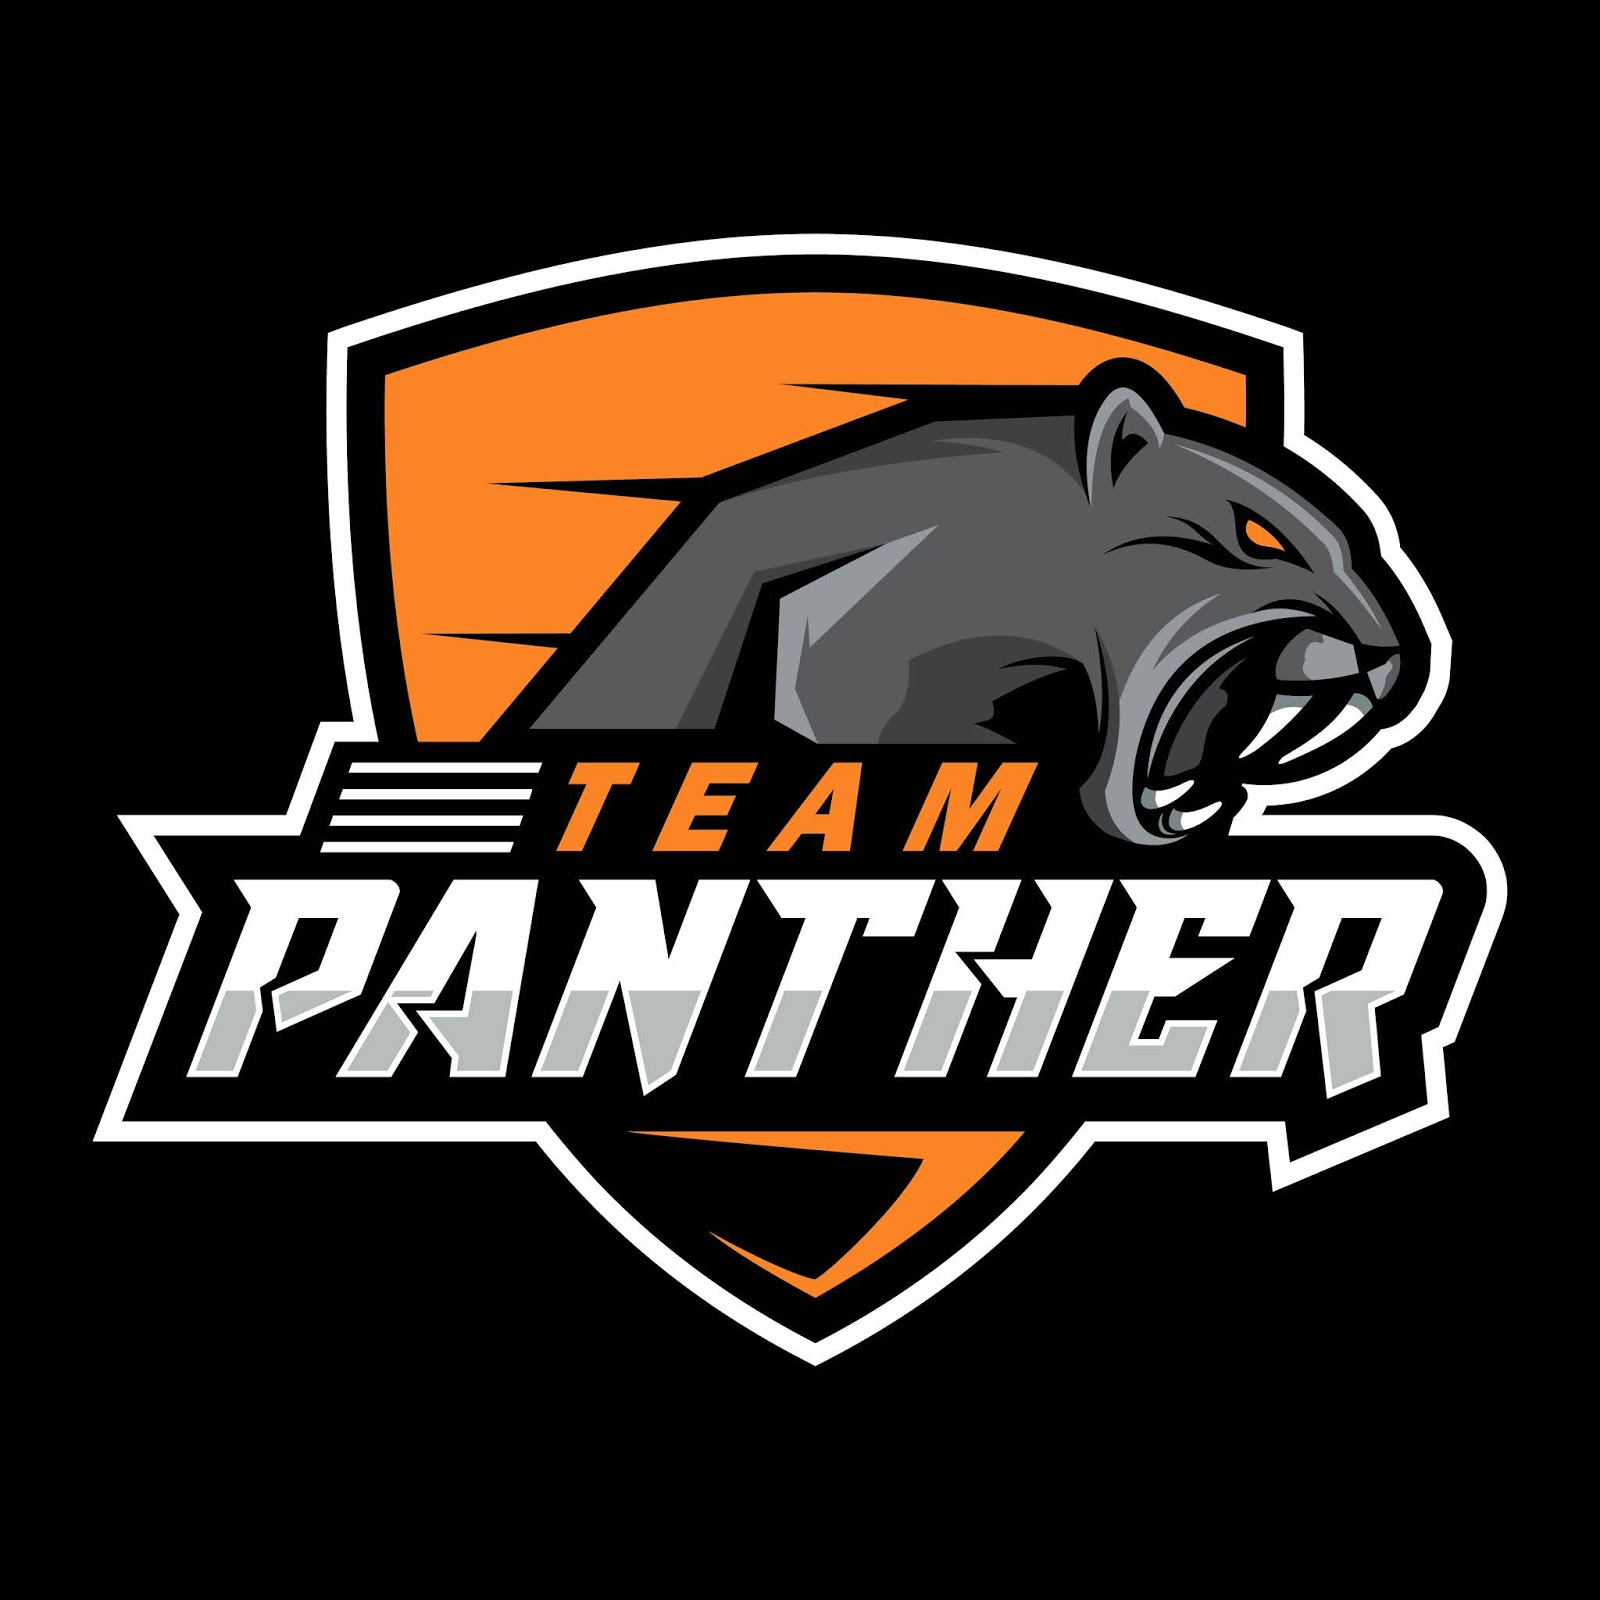 Panther Esport Logo Free Download Vector CDR, AI, EPS and PNG Formats